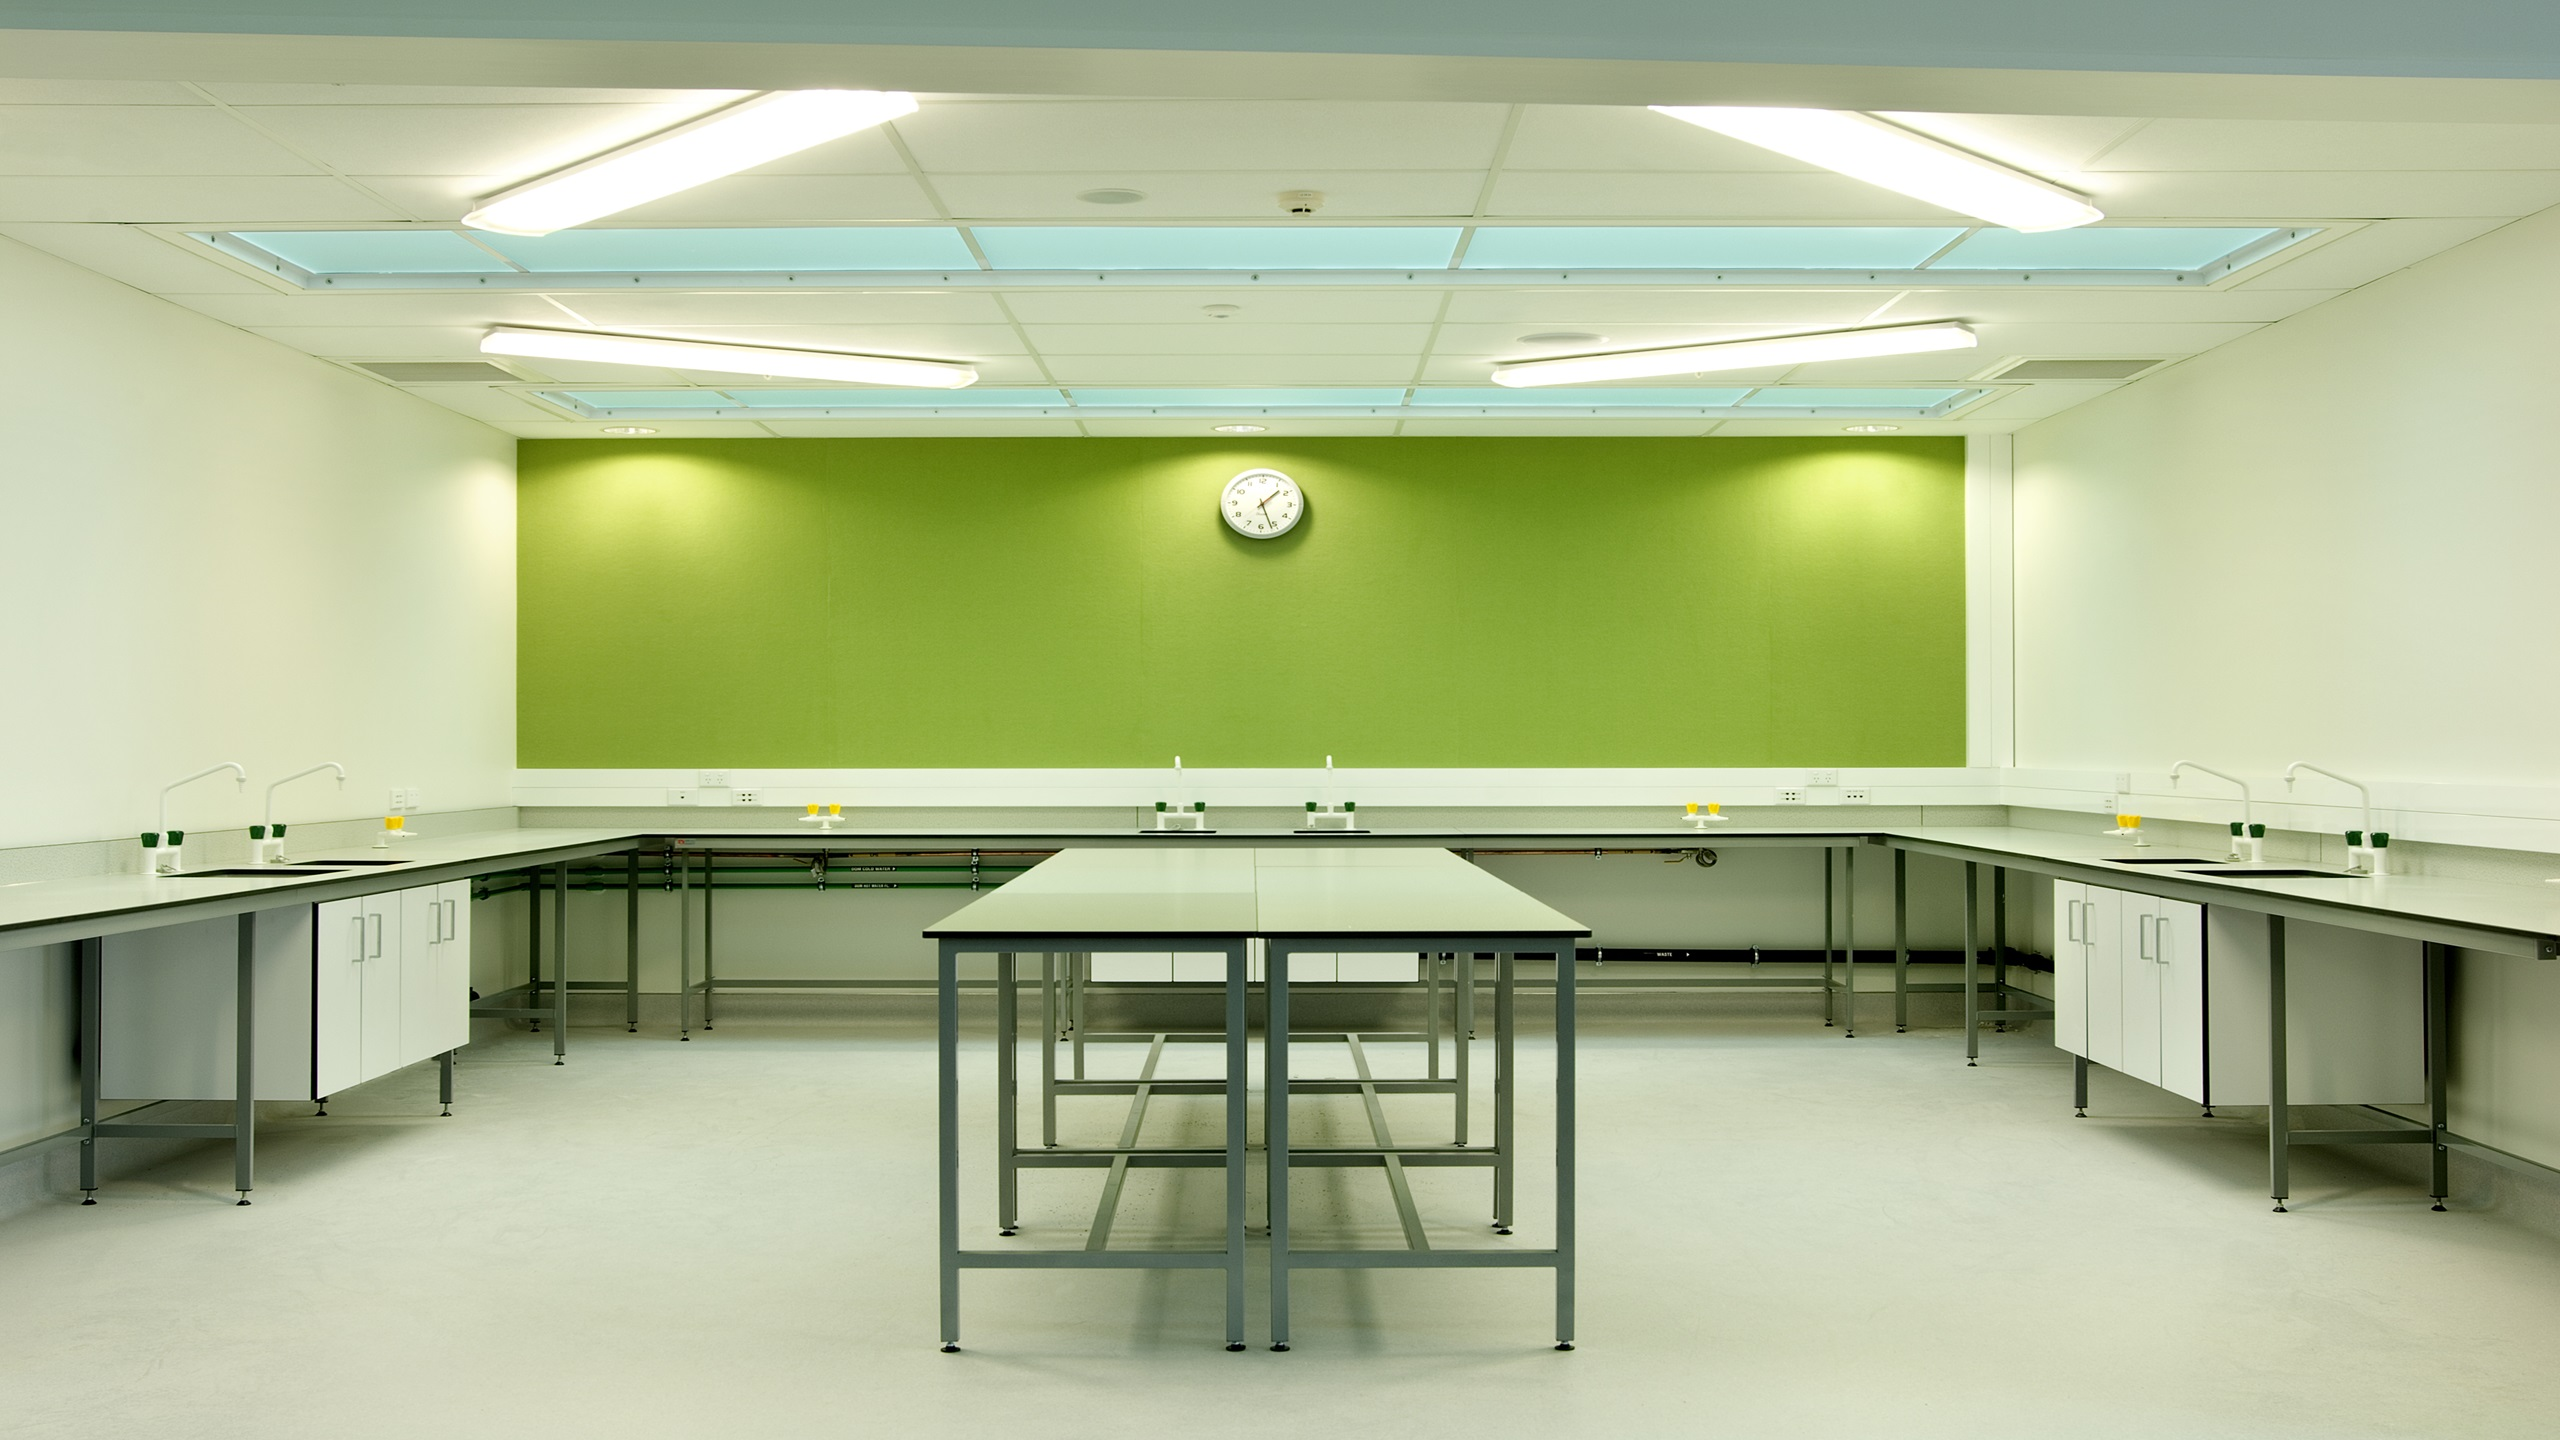 Hobsonville Point Intermediate science room showing Premier Pinboard in green installed on the wall